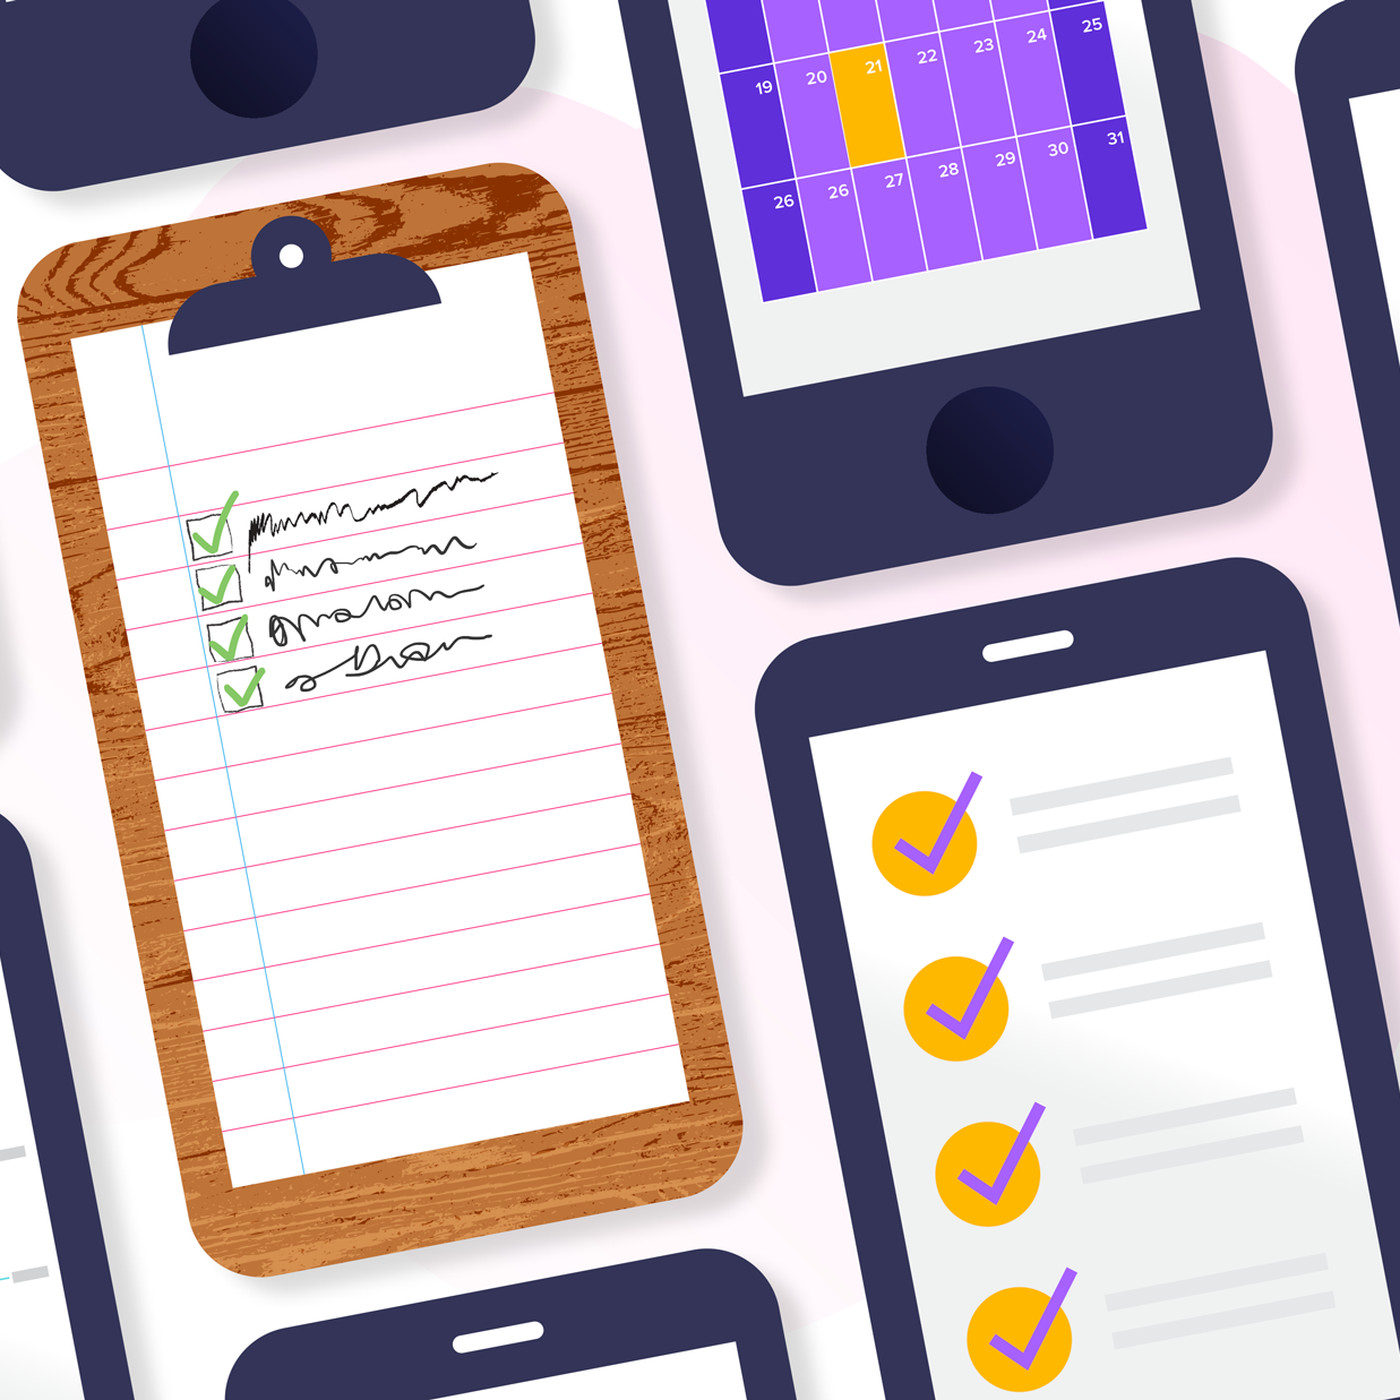 New Years resolutions 2019: Can habit tracking apps help you